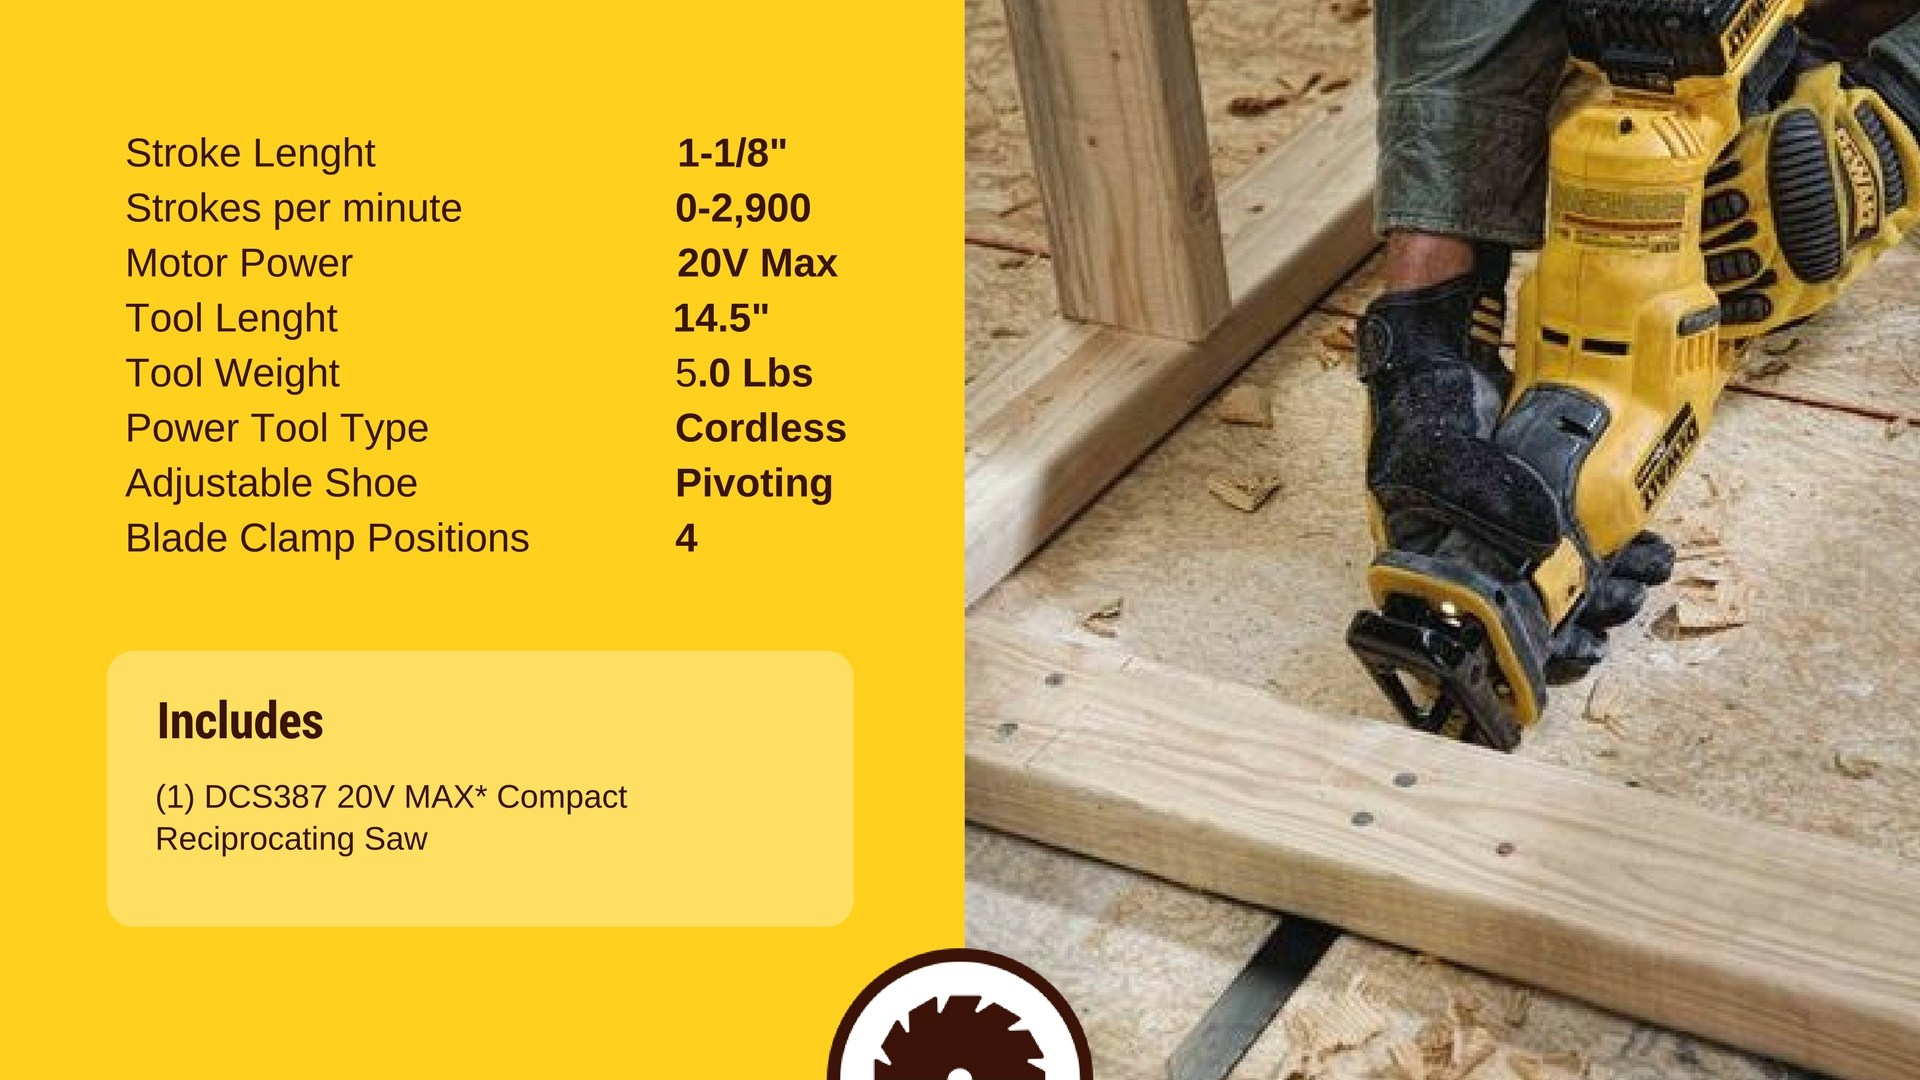 DEWALT DCS387B Reciprocating Saw Specs